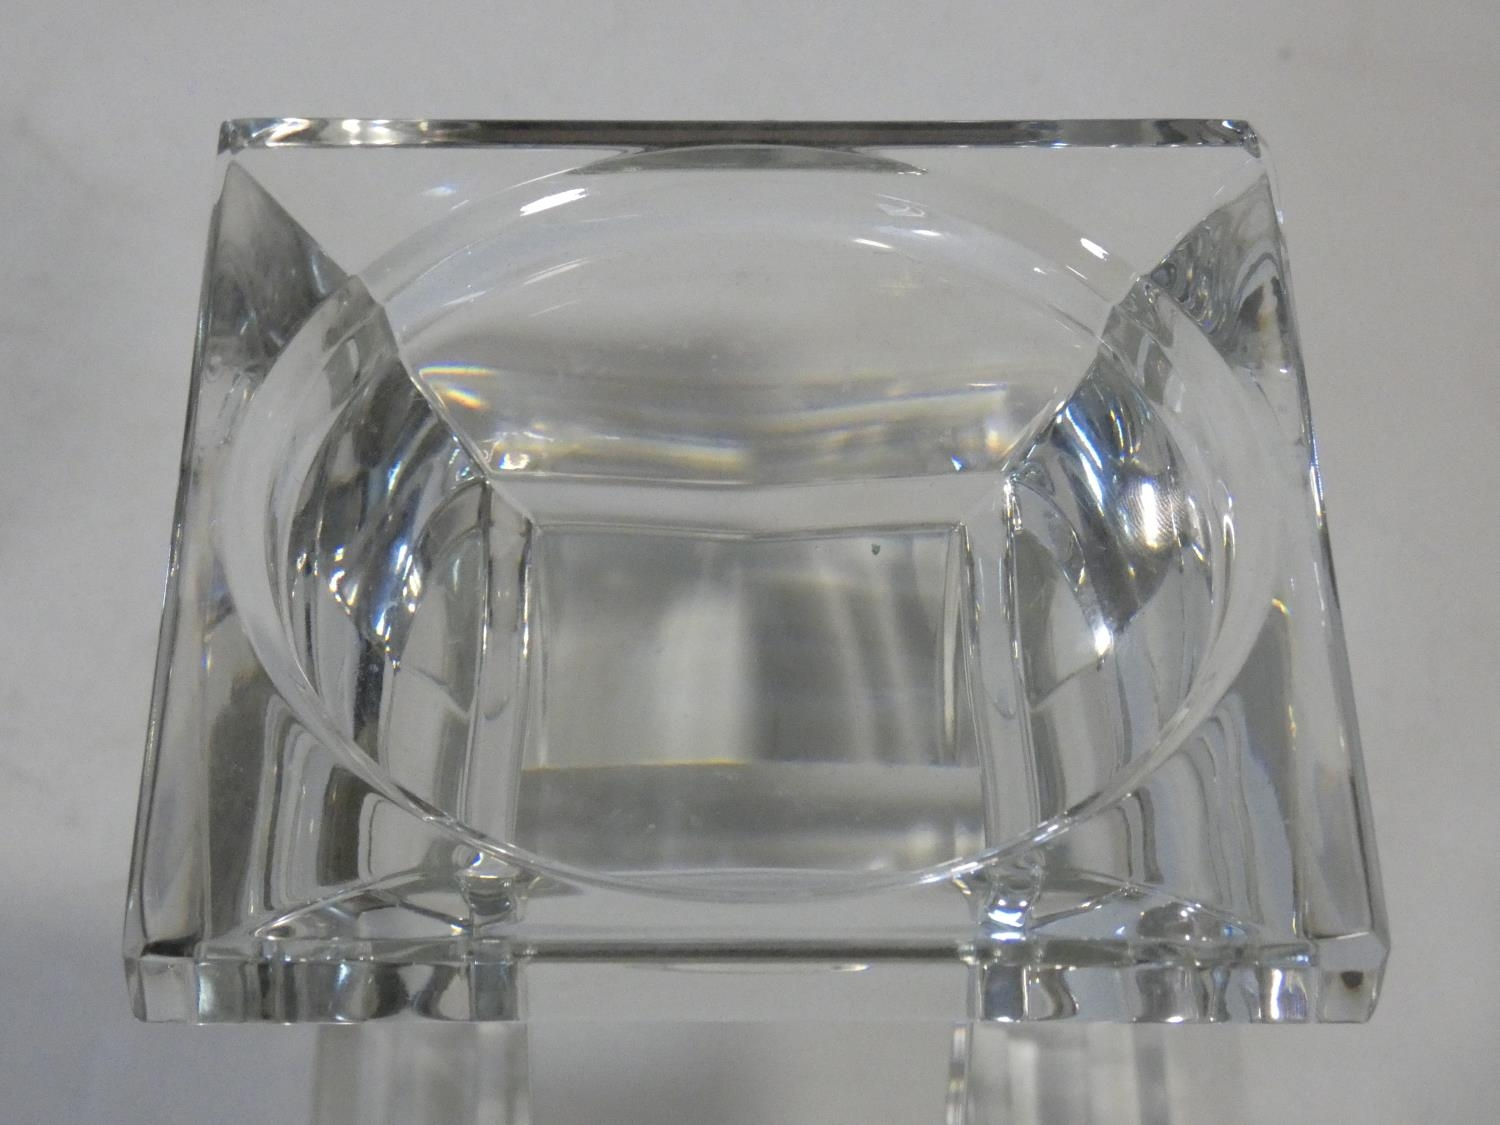 A set of four chrome spherical candle holders and a glass pedestal candle holder. H.14xW.10xL.10cm - Image 4 of 4